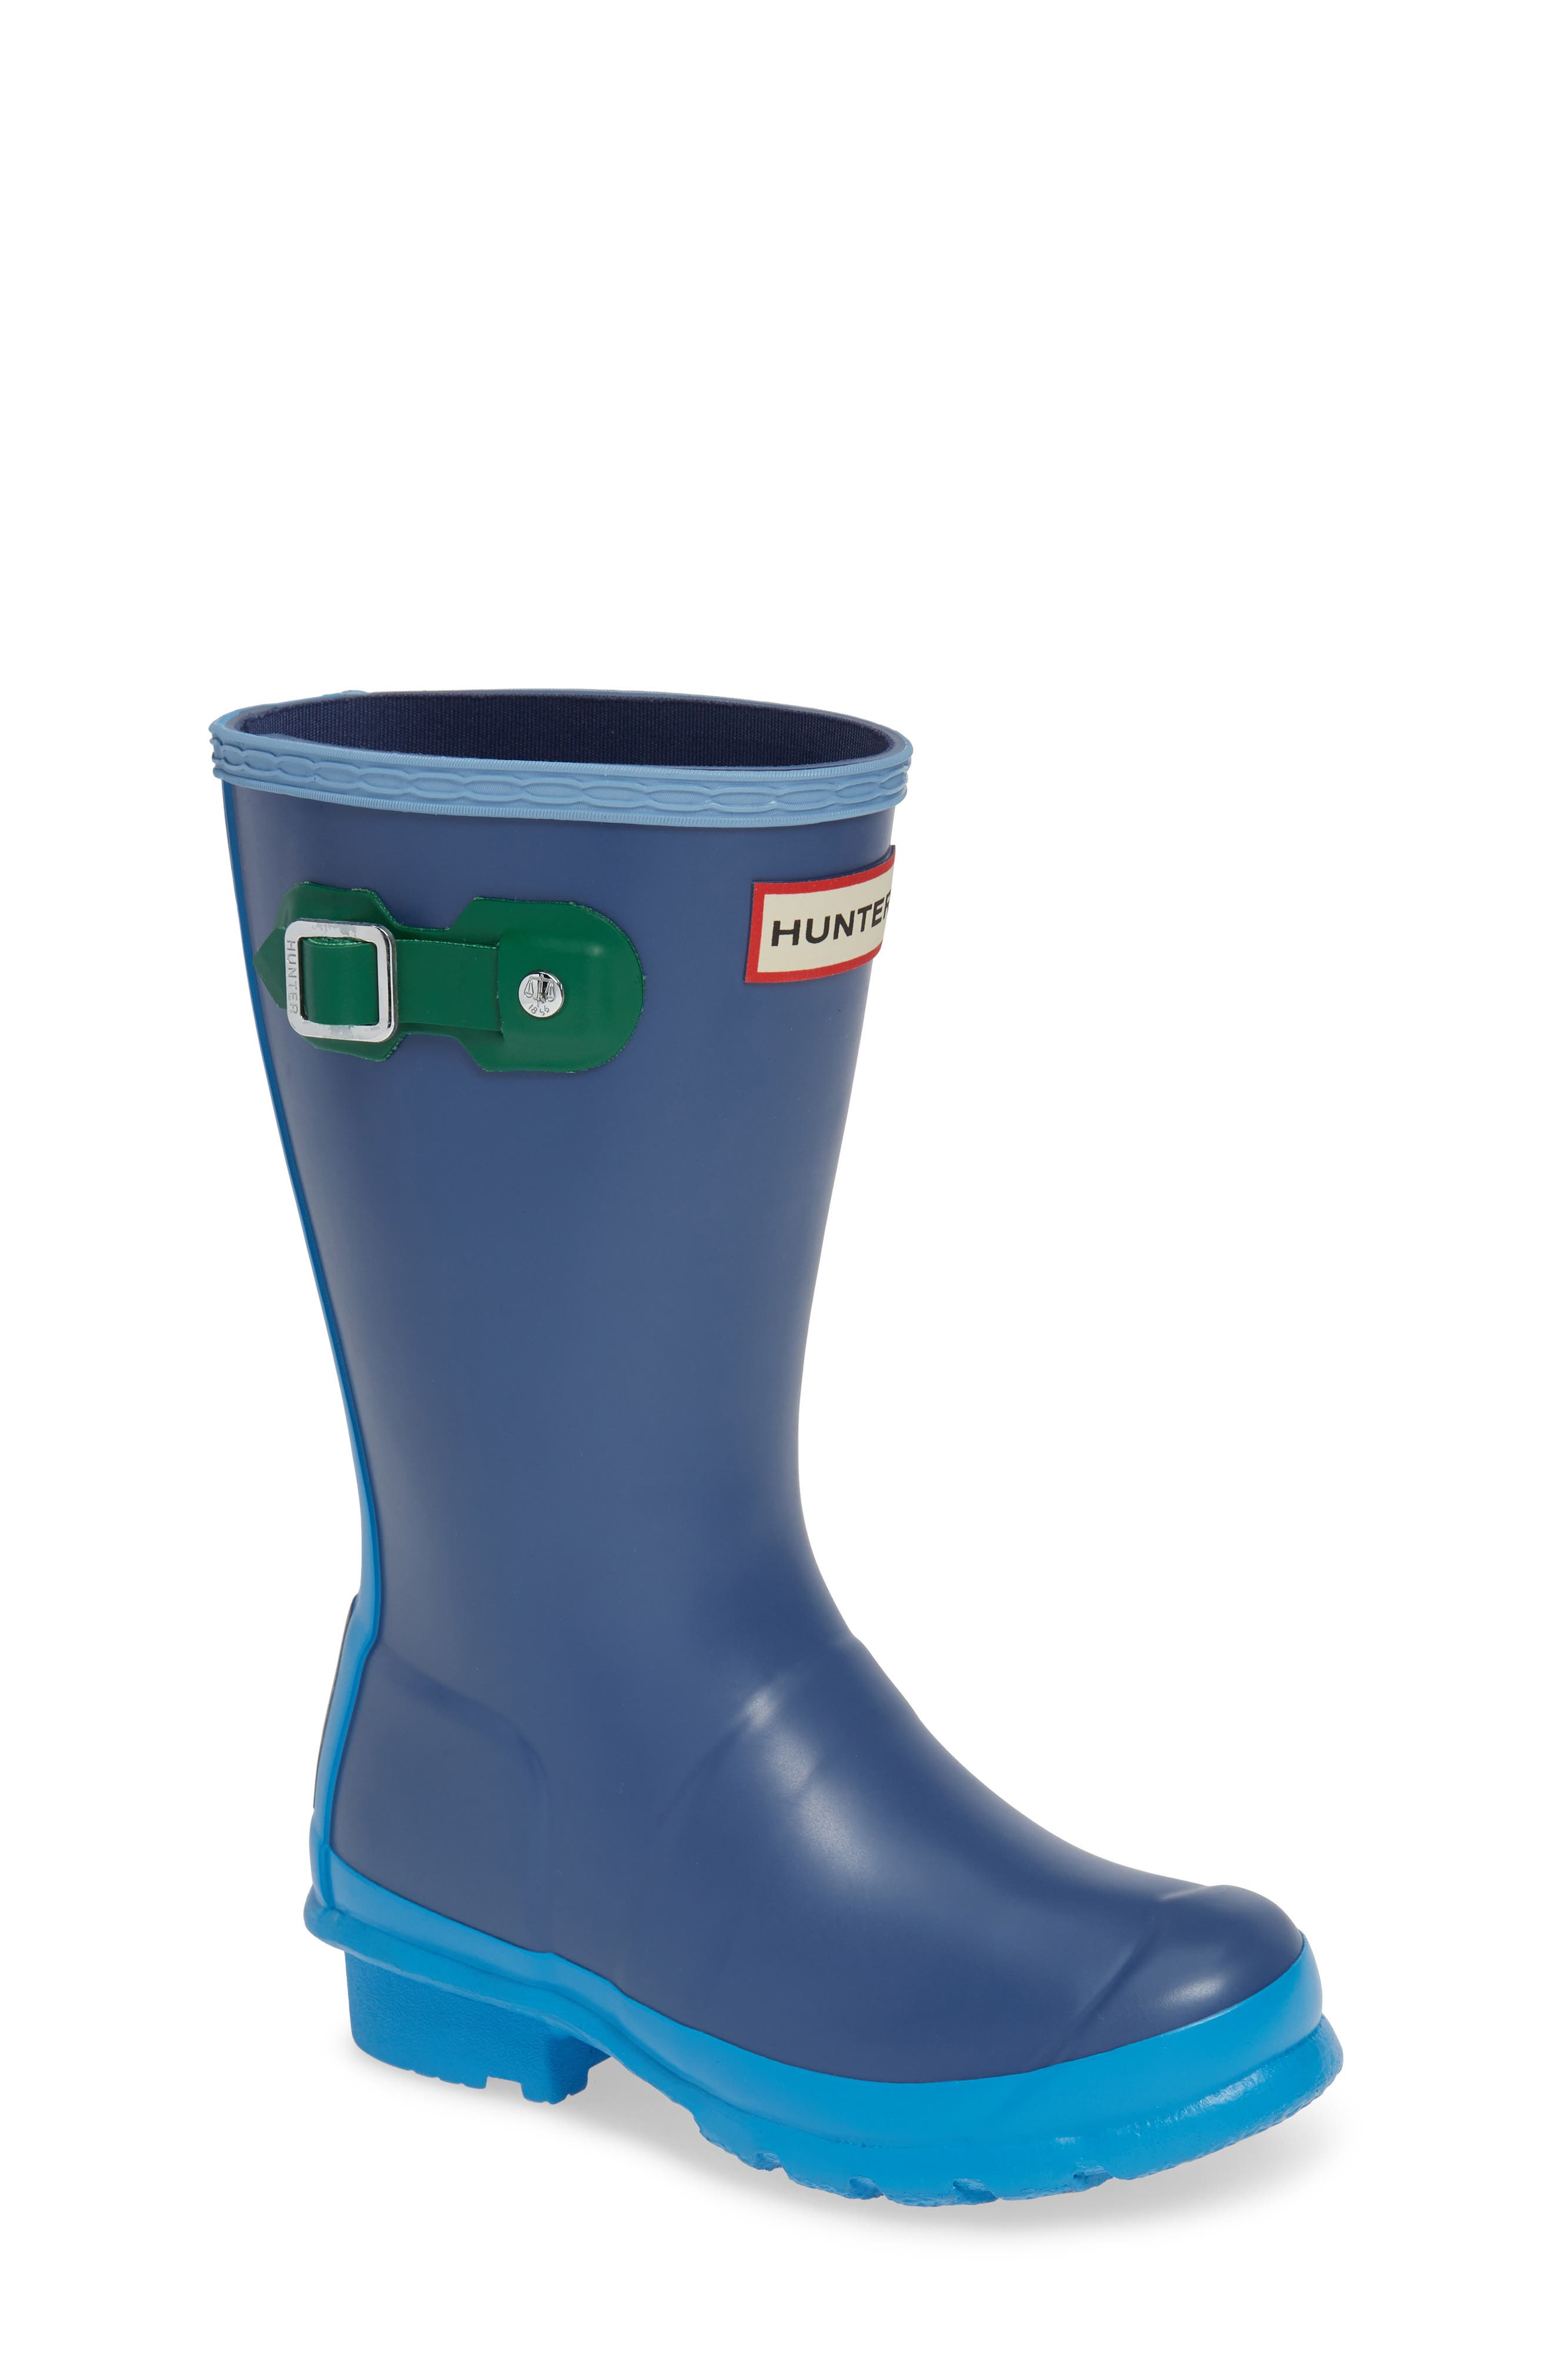 Original Colorblock Rain Boot,                             Main thumbnail 1, color,                             PEAK BLUE COLORBLOCK